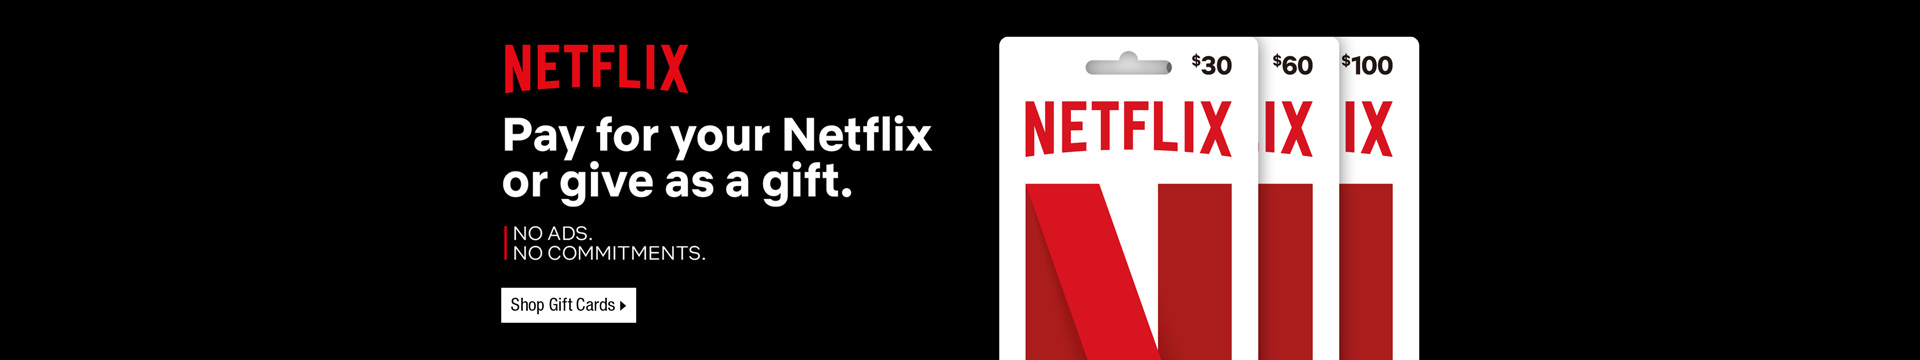 Gift Cards for Travel, Movies, Gaming & More - Newegg com